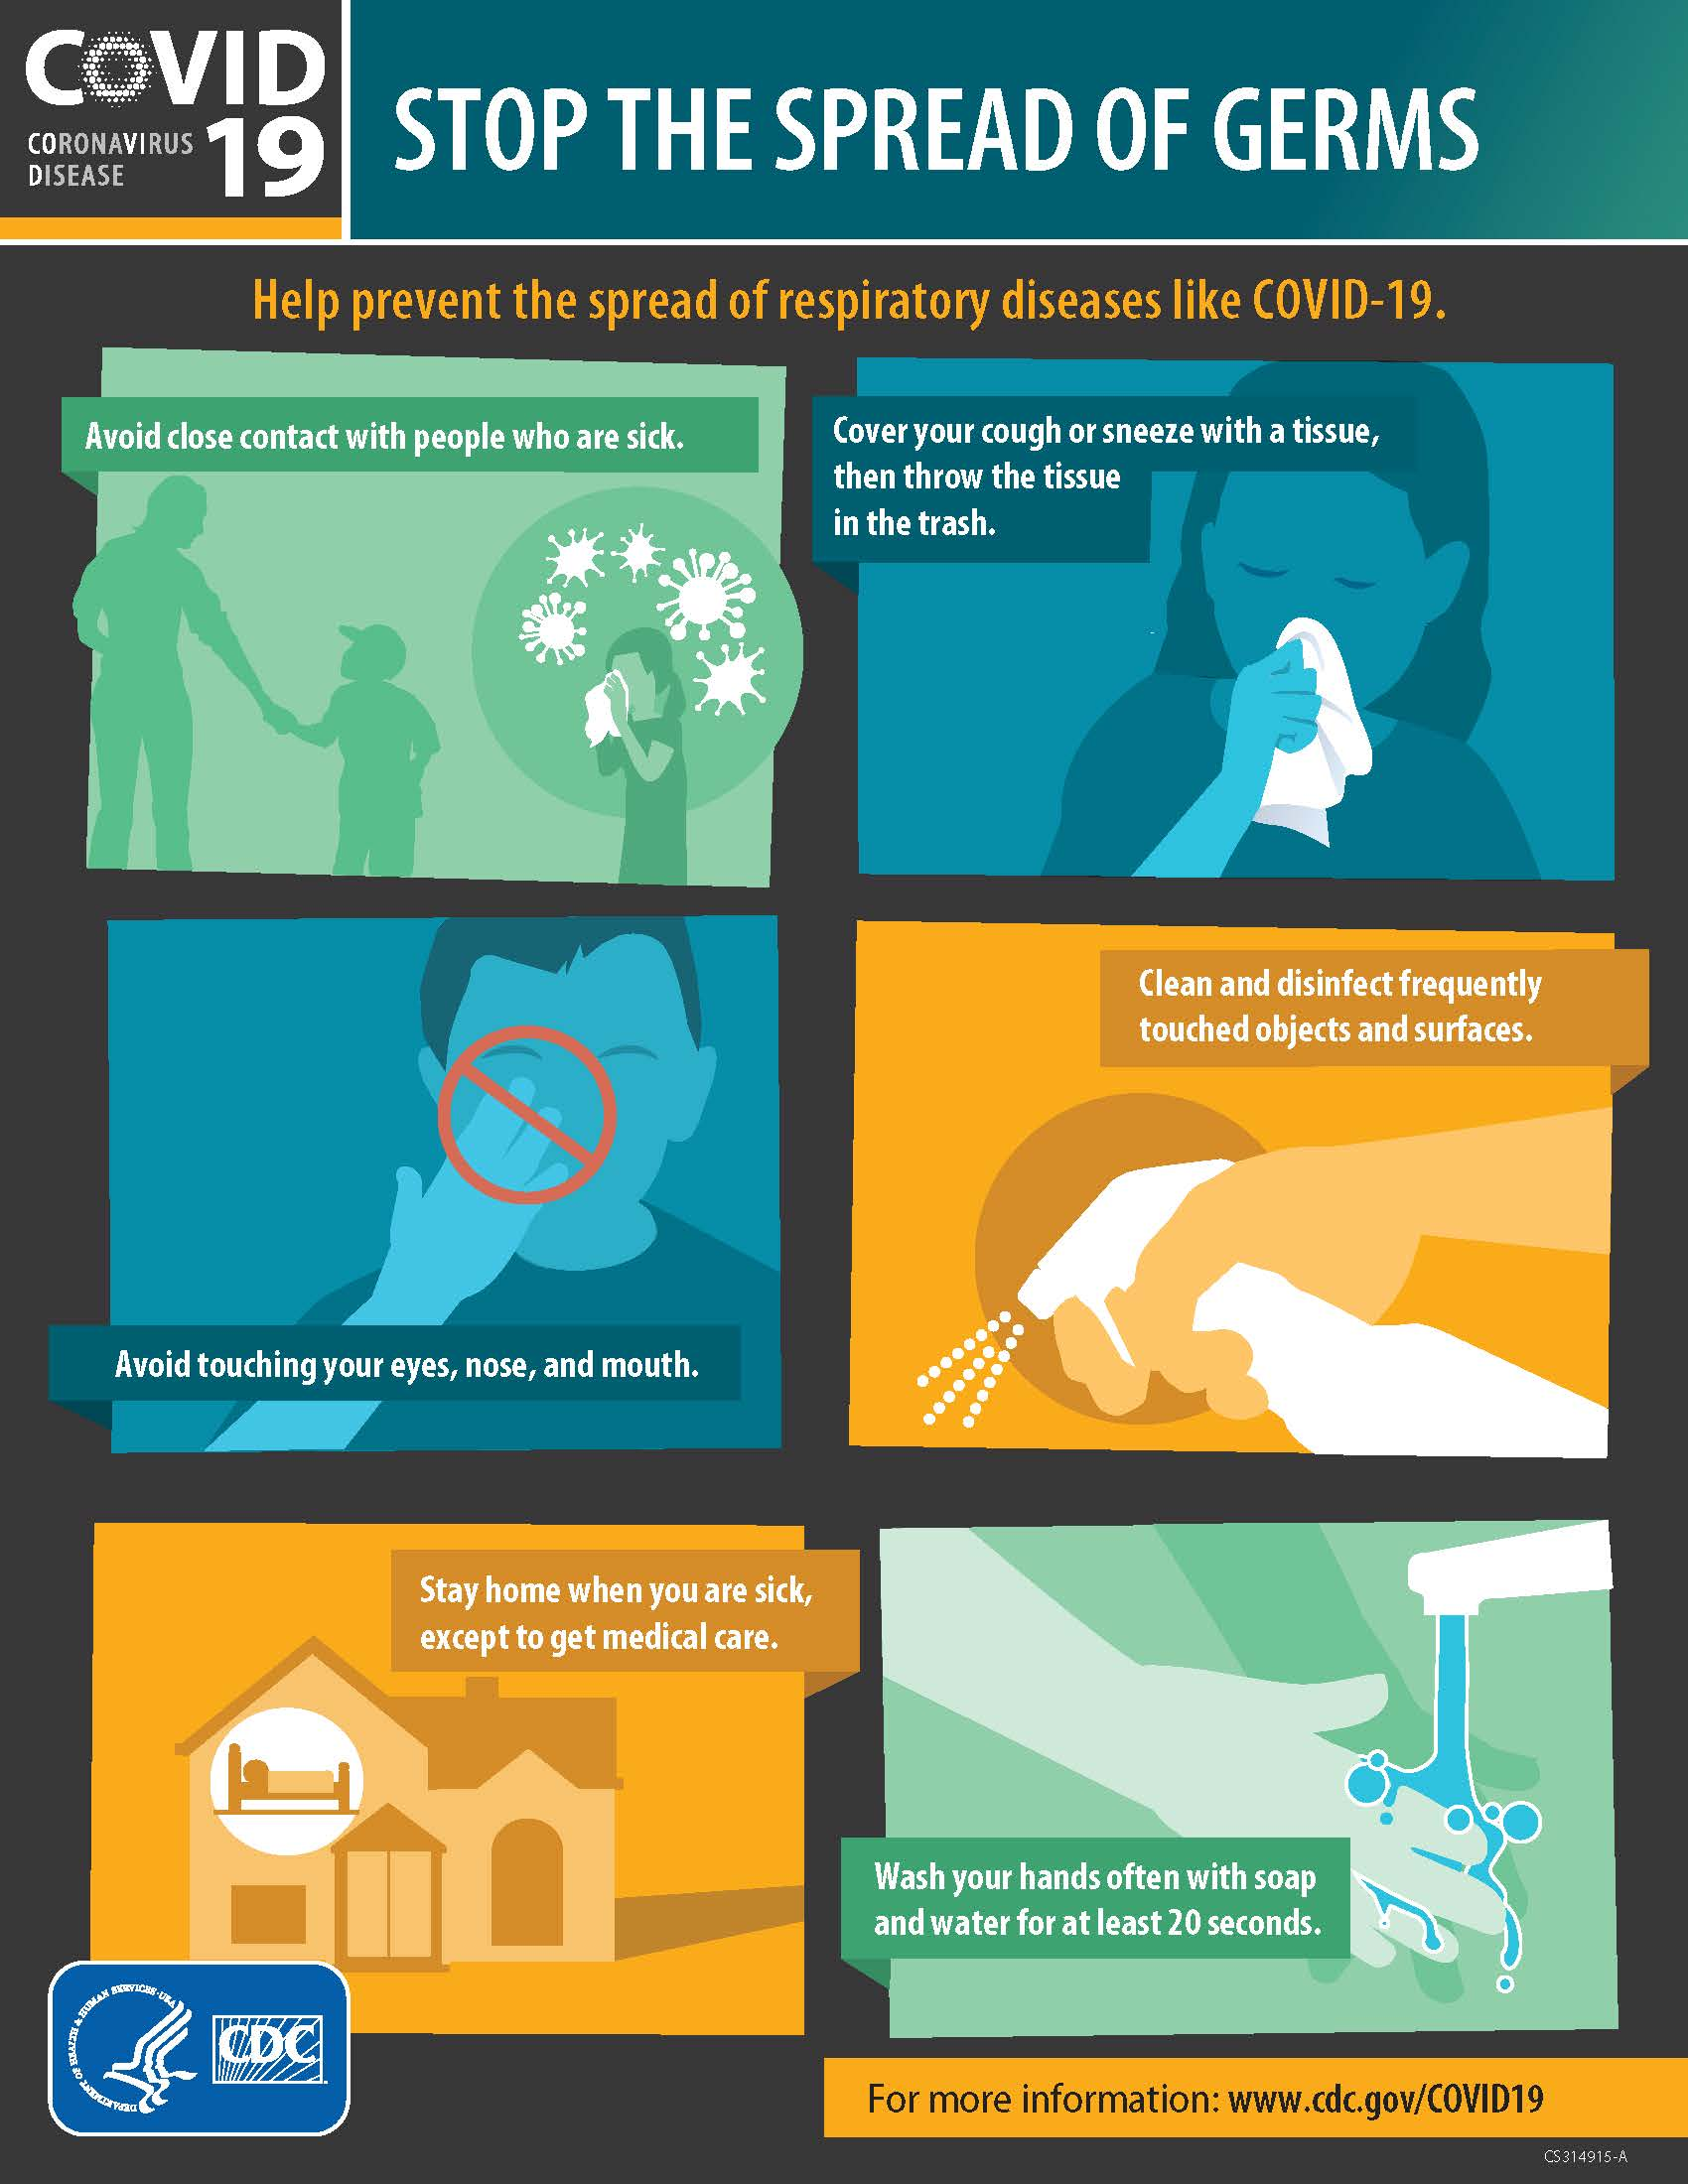 English Stop the Spread of Germs (COVID-19)